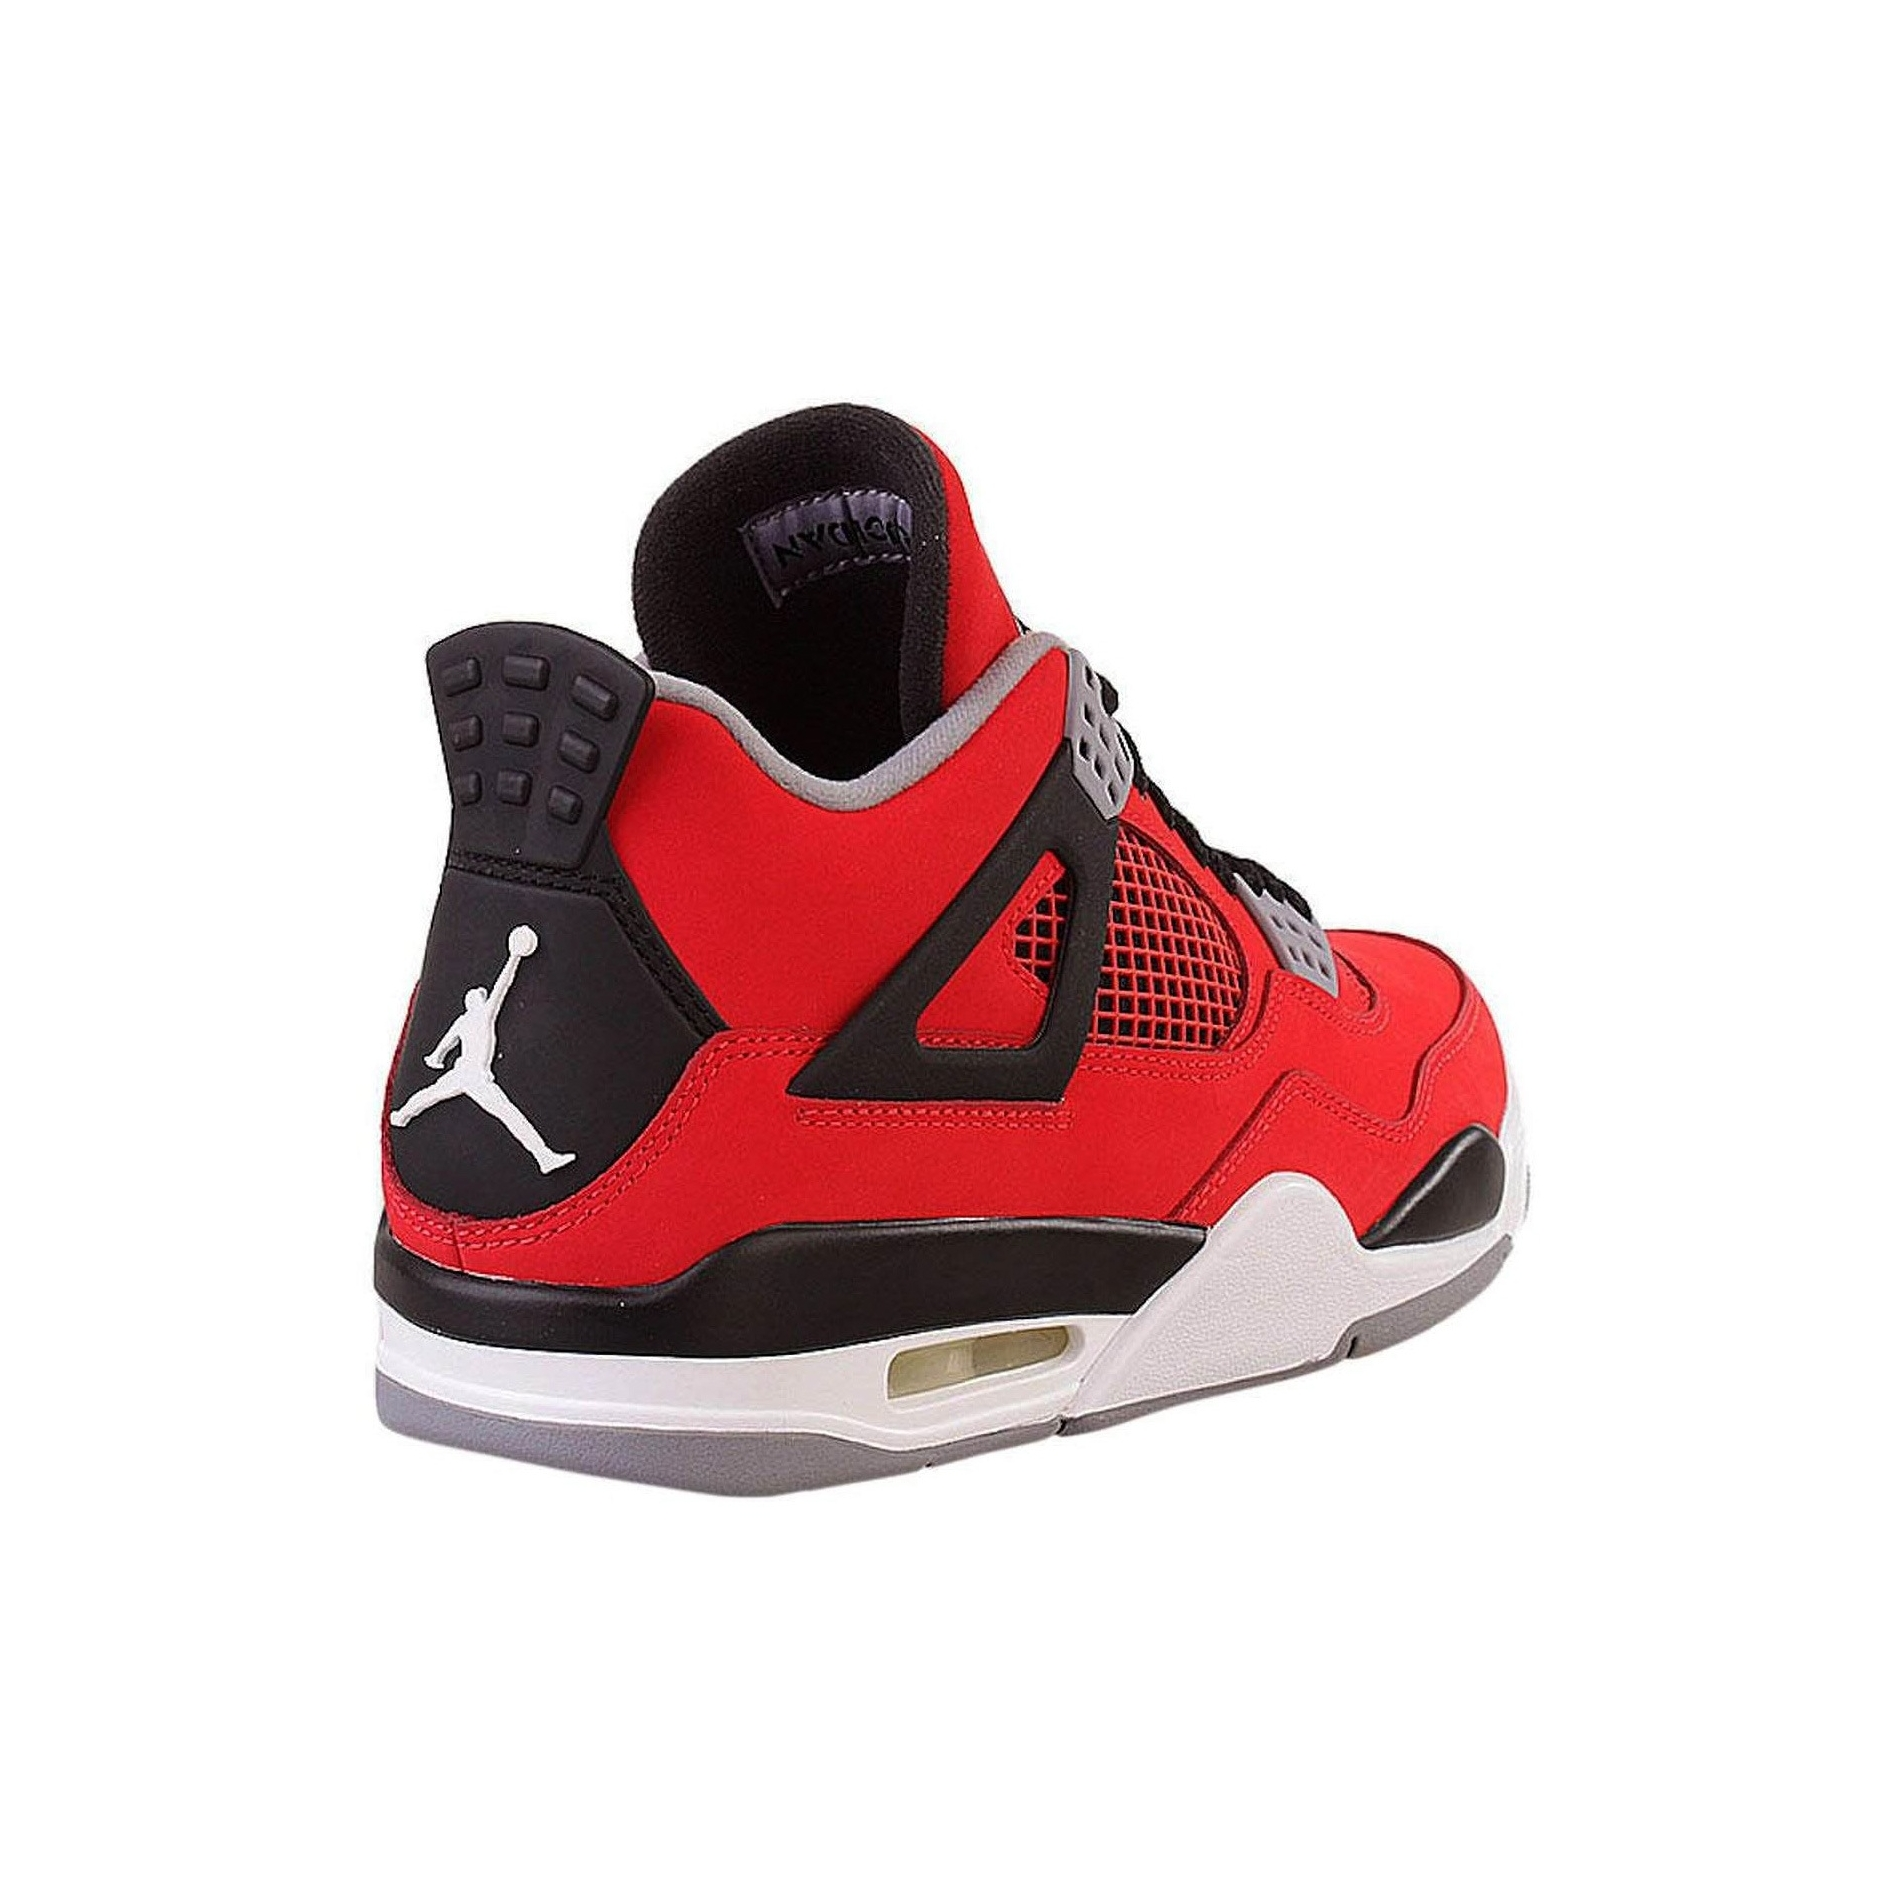 nike air jordan 4 retro toro bravo 308497 603. Black Bedroom Furniture Sets. Home Design Ideas